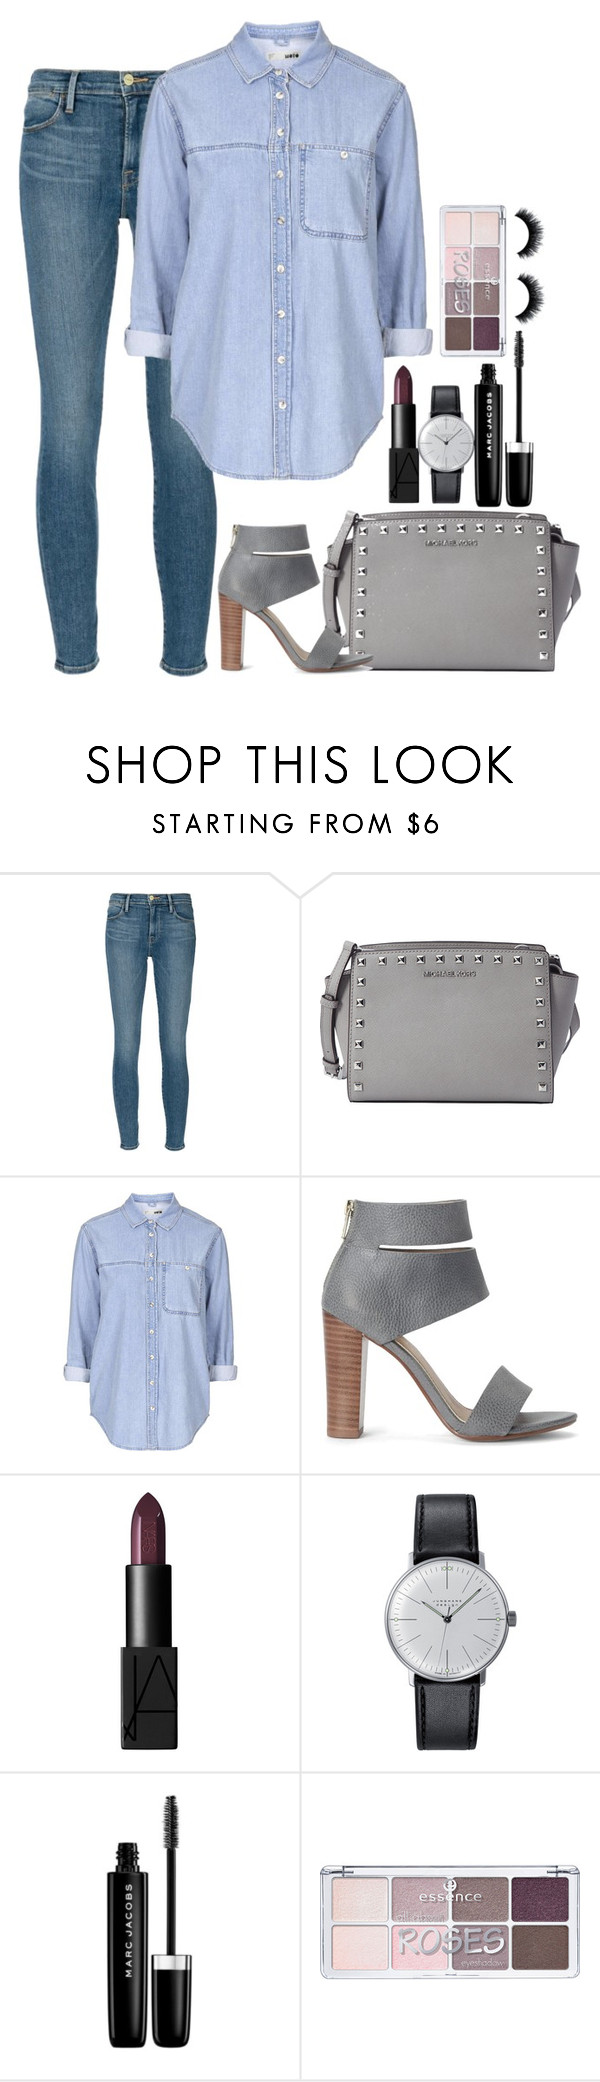 """Sin título #171"" by m0nserrath ❤ liked on Polyvore featuring Frame Denim, MICHAEL Michael Kors, Topshop, Splendid, NARS Cosmetics, Klein & more and Marc Jacobs"